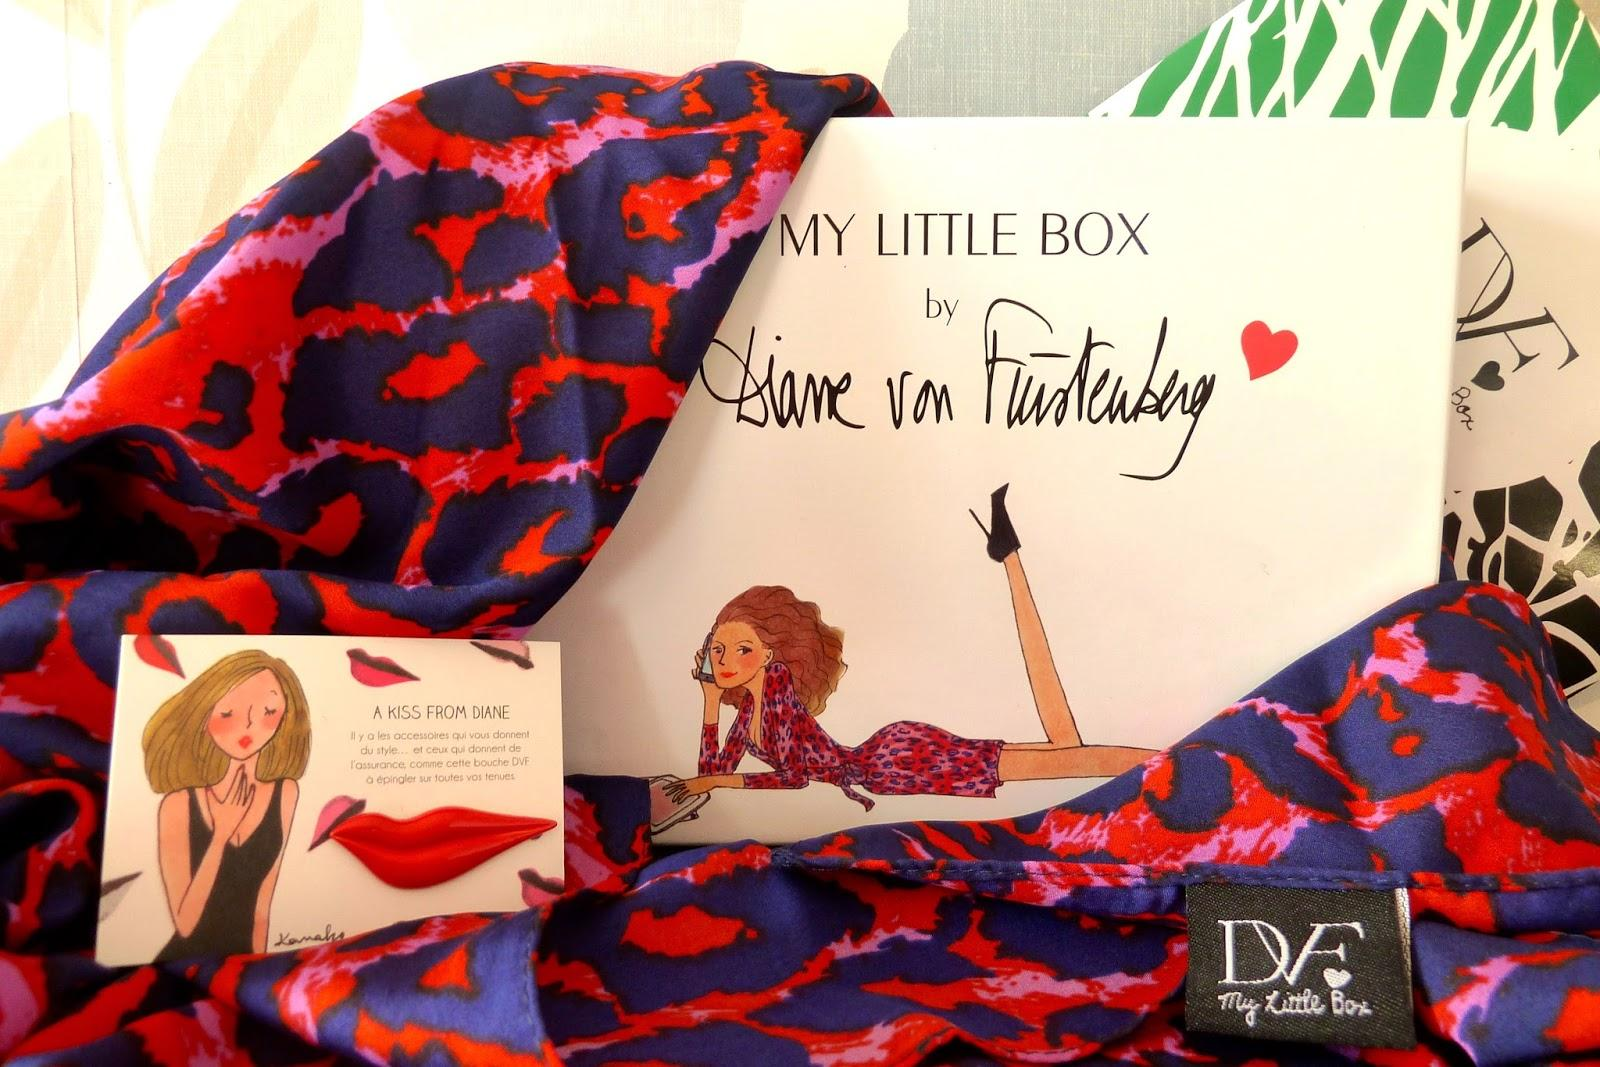 My Little Box by Diane Von Furstenberg - Octobre 2014